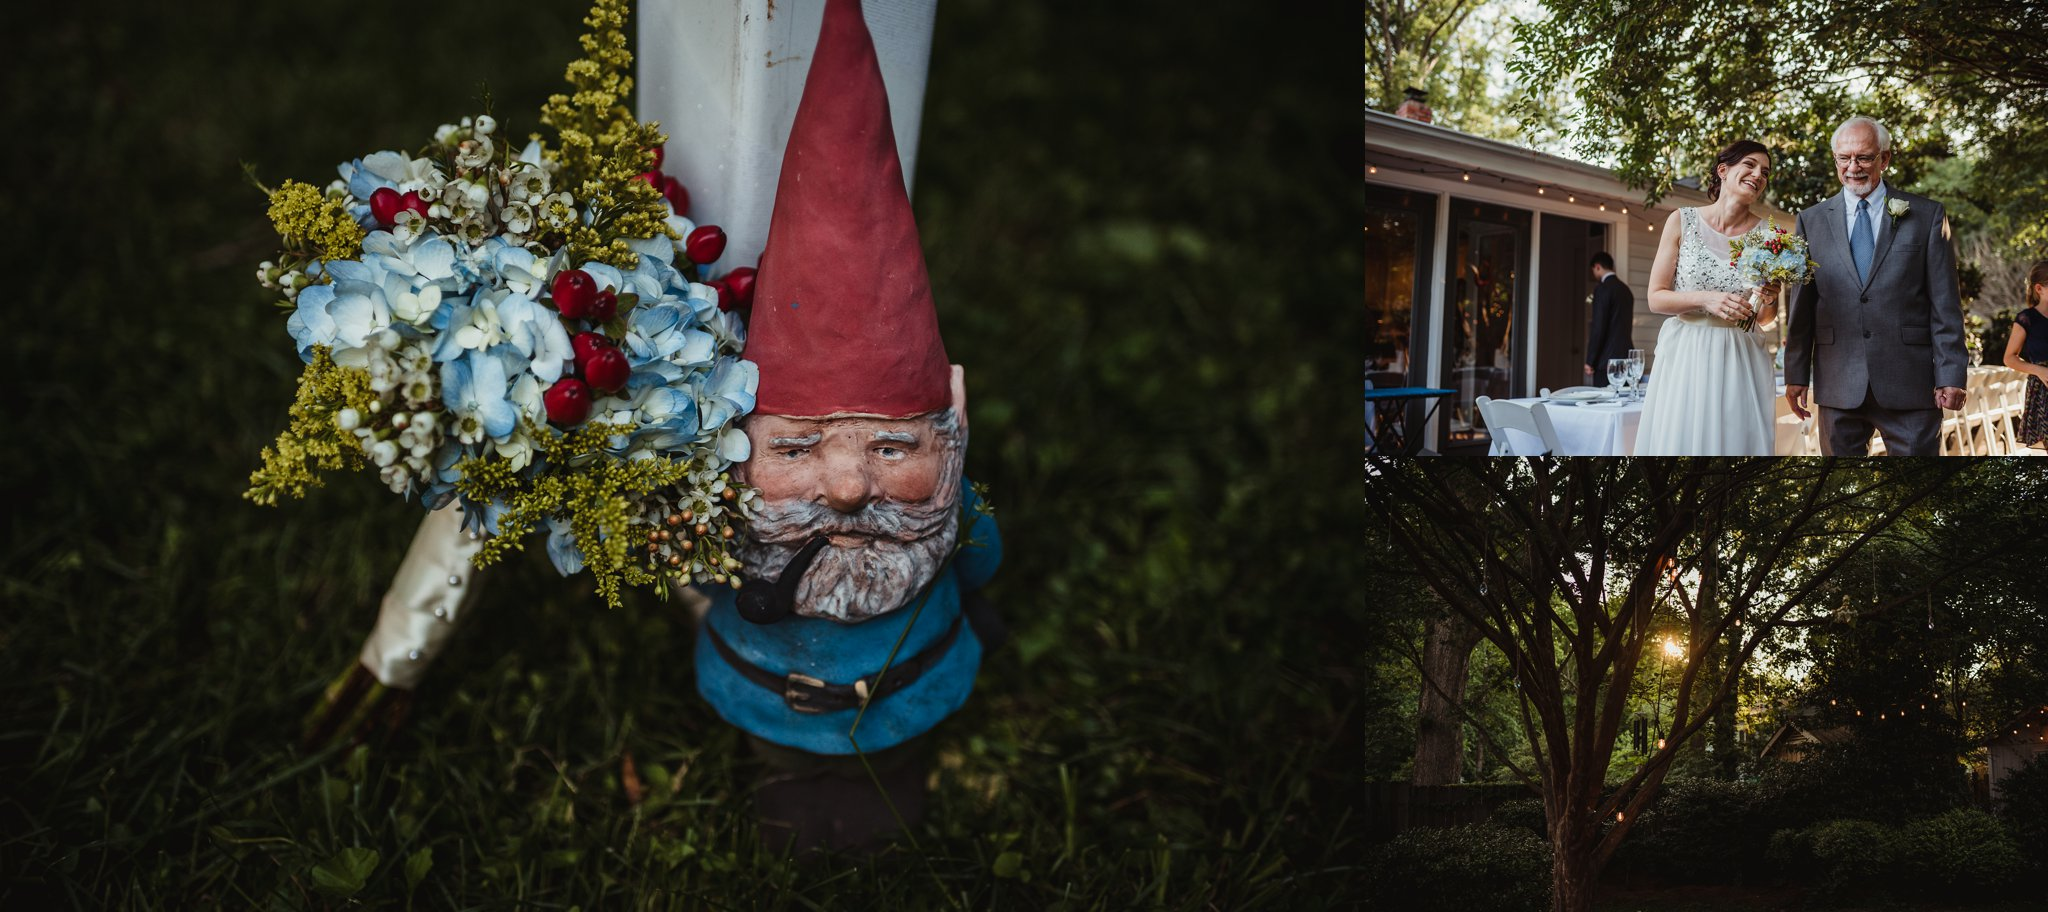 Their intimate wedding reception in their backyard in Raleigh at sunset included flowers with their garden gnome, photos by Rose Trail Images.